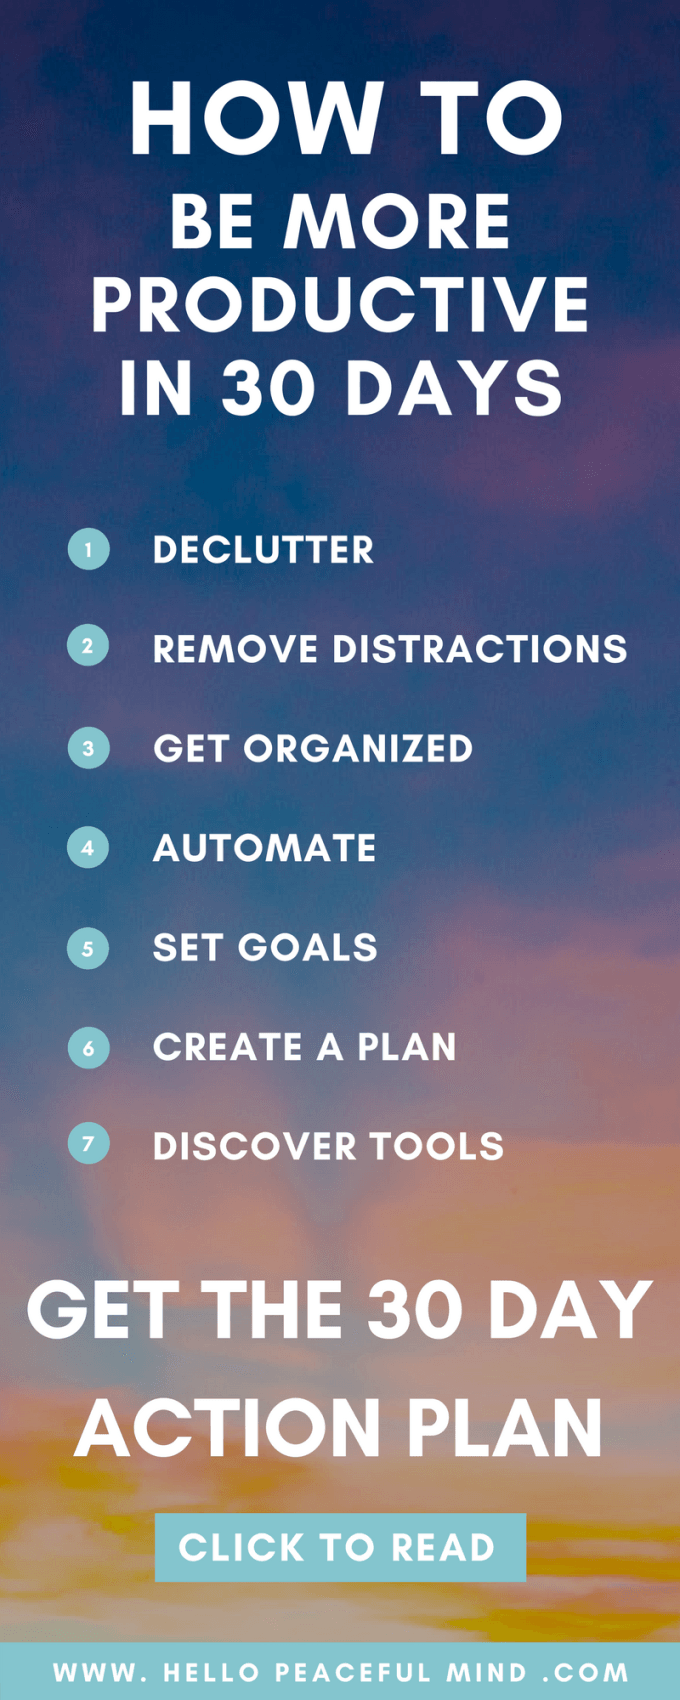 How To Be More Productive In 30 Days is part of Organization College Productivity - Join the Productivity Challenge to become more productive in 30 days! You will find tips and tricks to get organize, automate your work and reach your goals